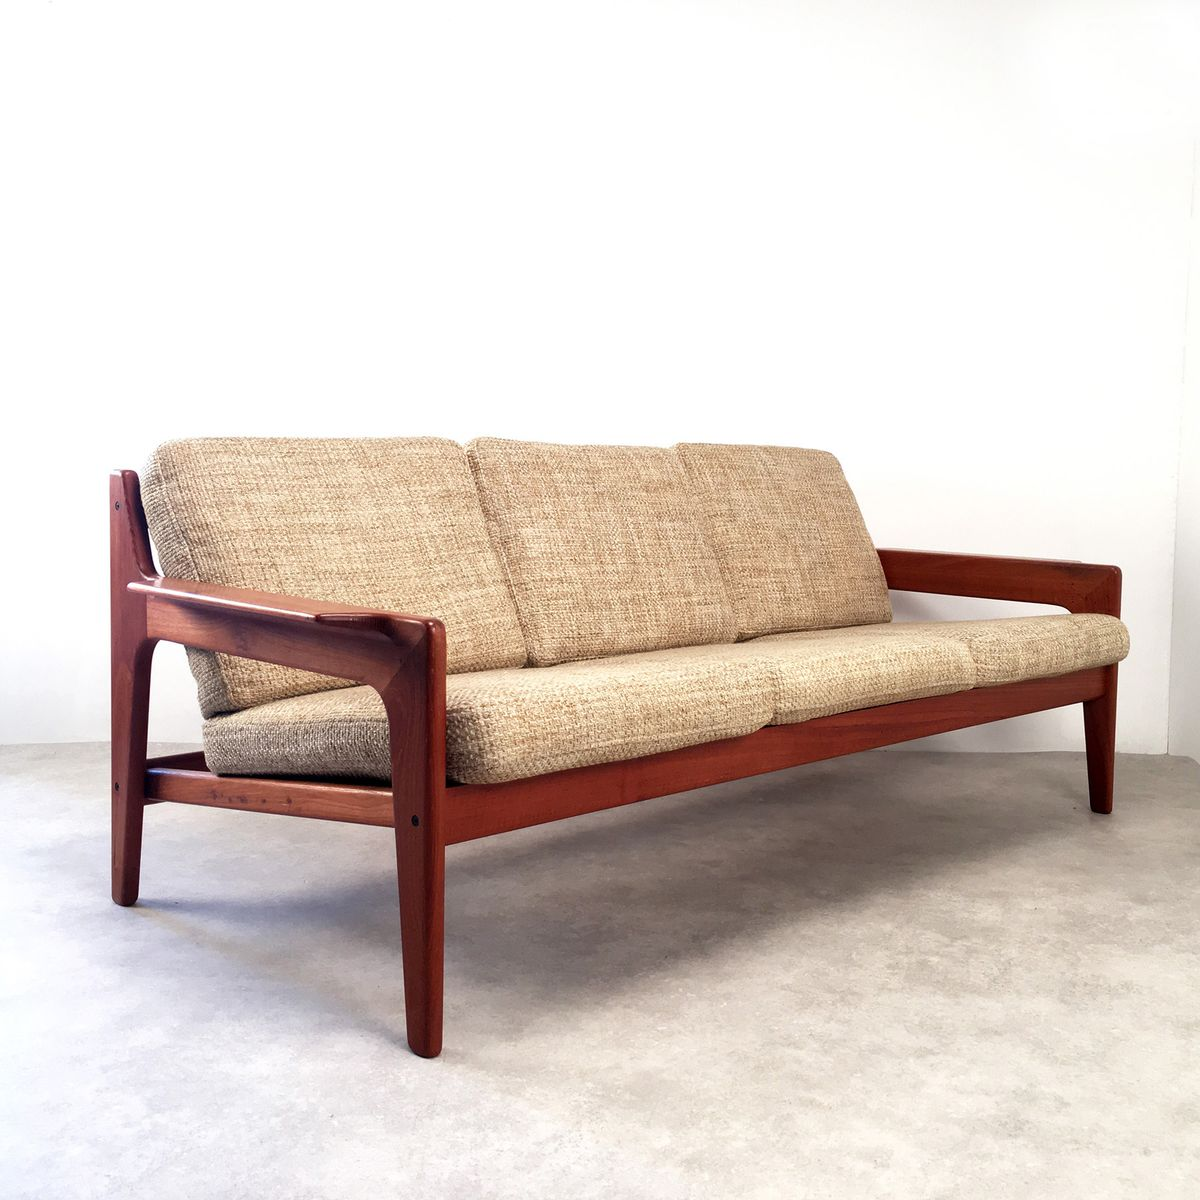 mid century danish three seater sofa by arne wahl iversen for komfort 1960s for sale at pamono. Black Bedroom Furniture Sets. Home Design Ideas